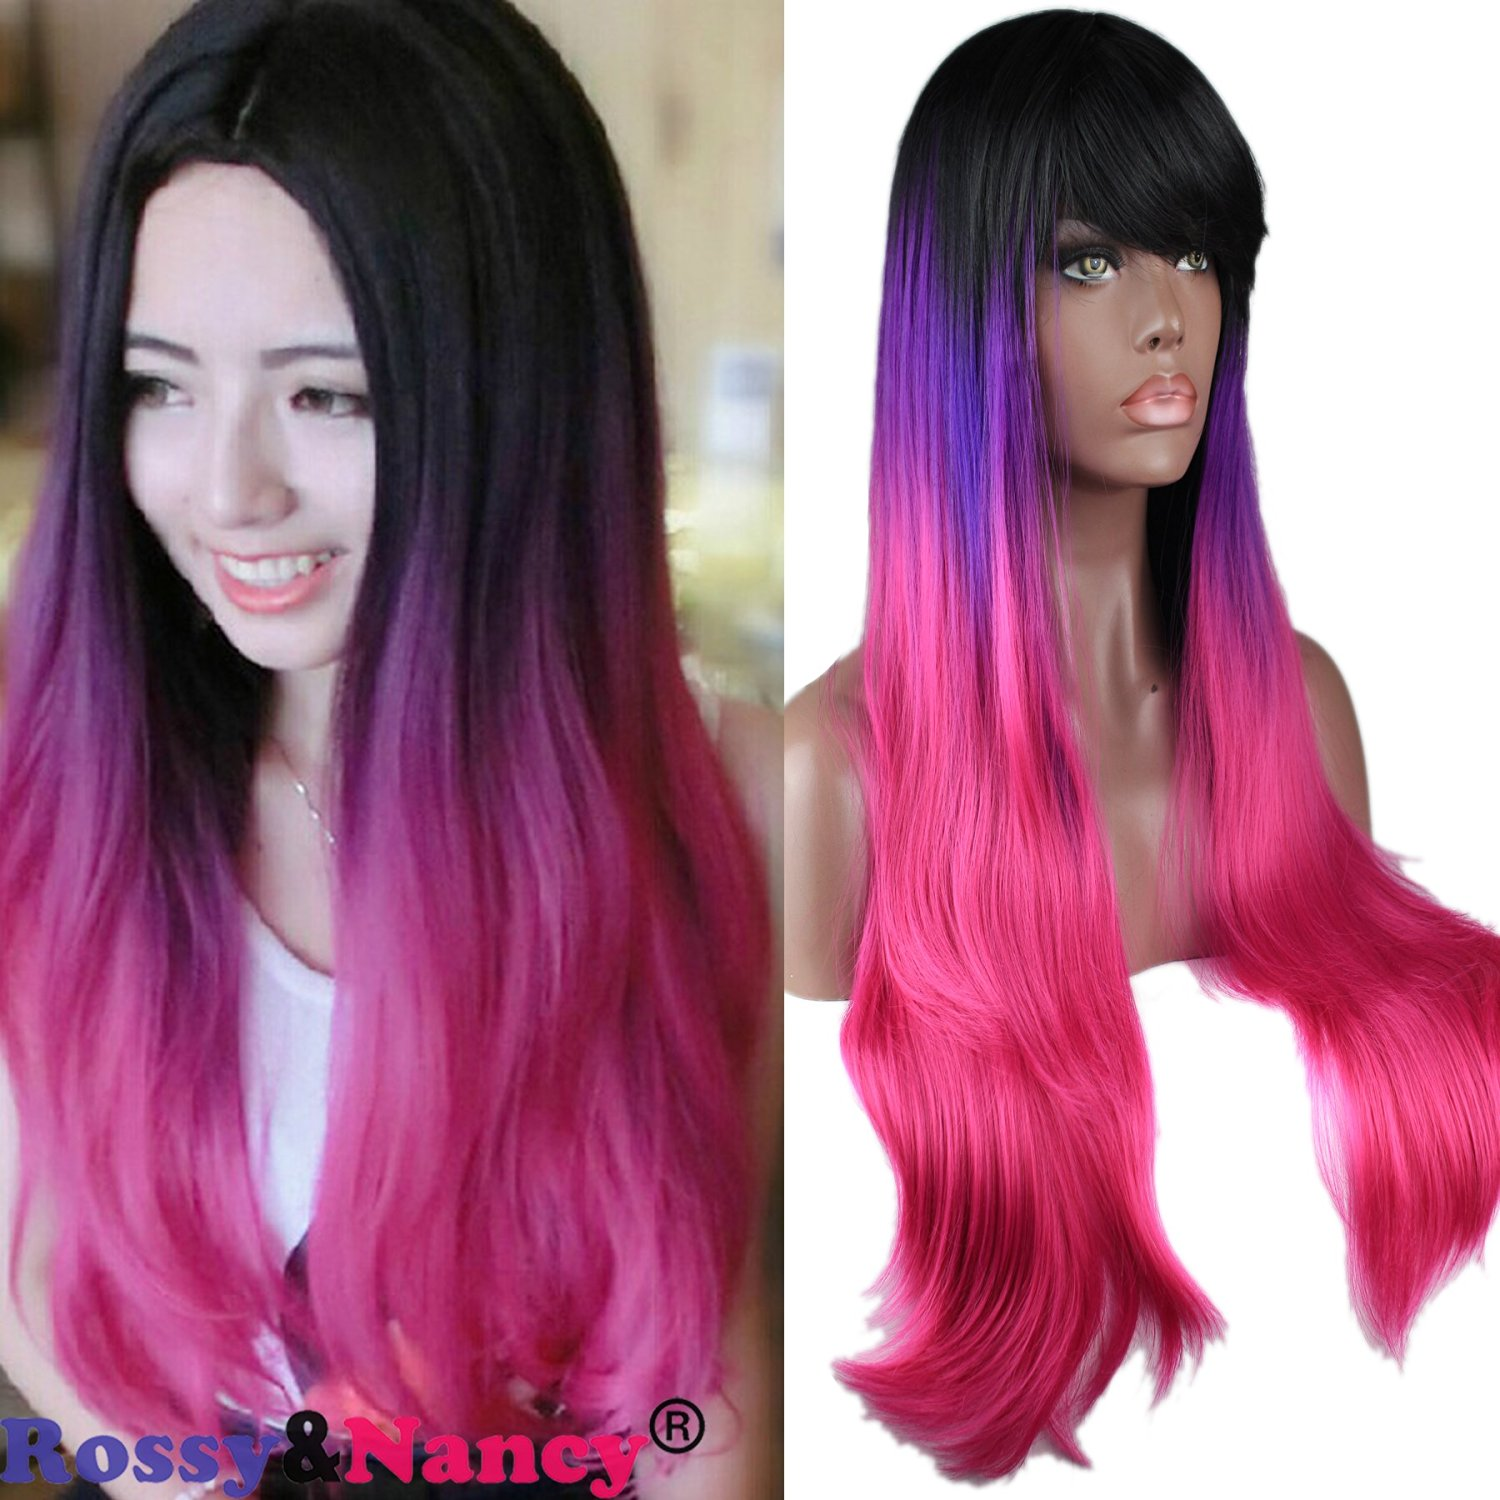 Rossy&Nancy Women's Fiber Long Wavy Cosplay Costume Wig 3 Tone (Black, Purple, Pink) Purple Red Gradient Ombre Long Straight Ombre Synthetic Wig with Bang Free Part 130% High Density for Women 22inch